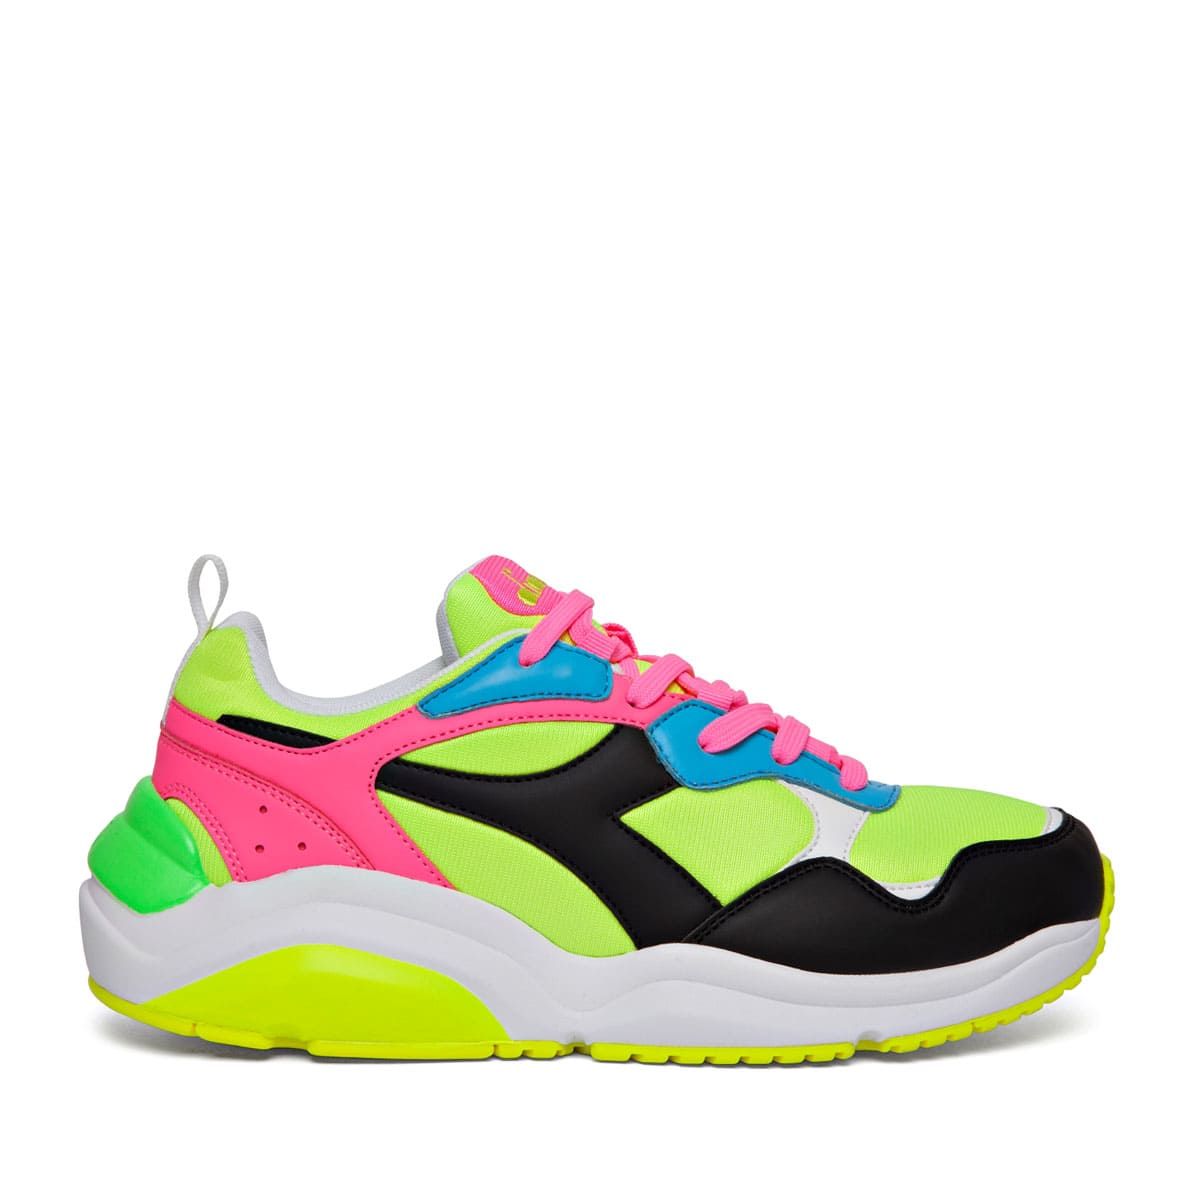 DIADORA WHIZZ RUN FLUO FL MULTI COLOR 19SP-I_photo_large